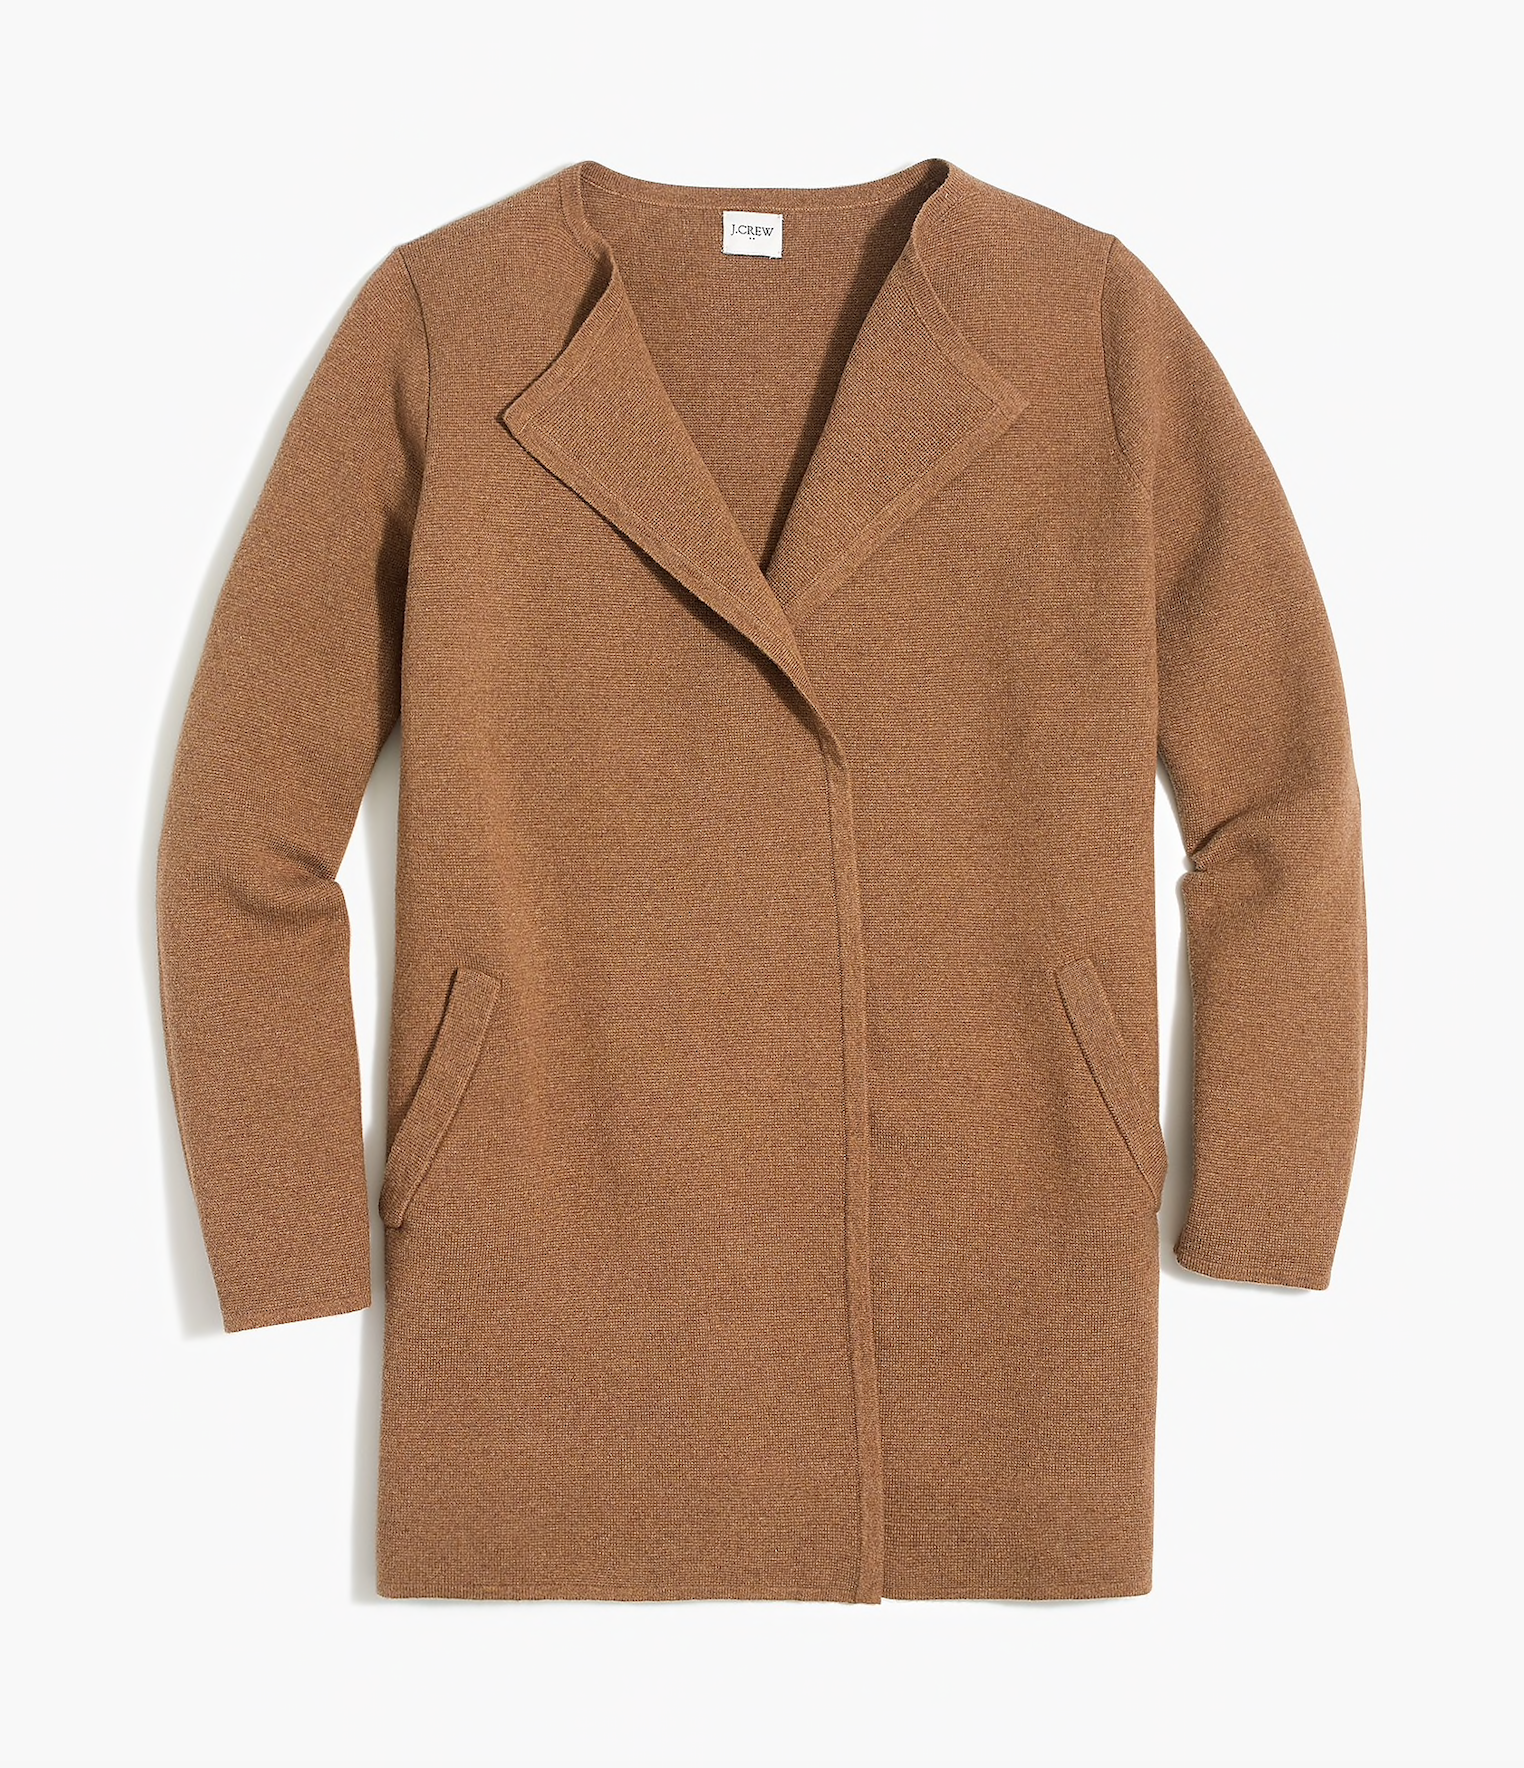 Camel Brown Sweater Jacket